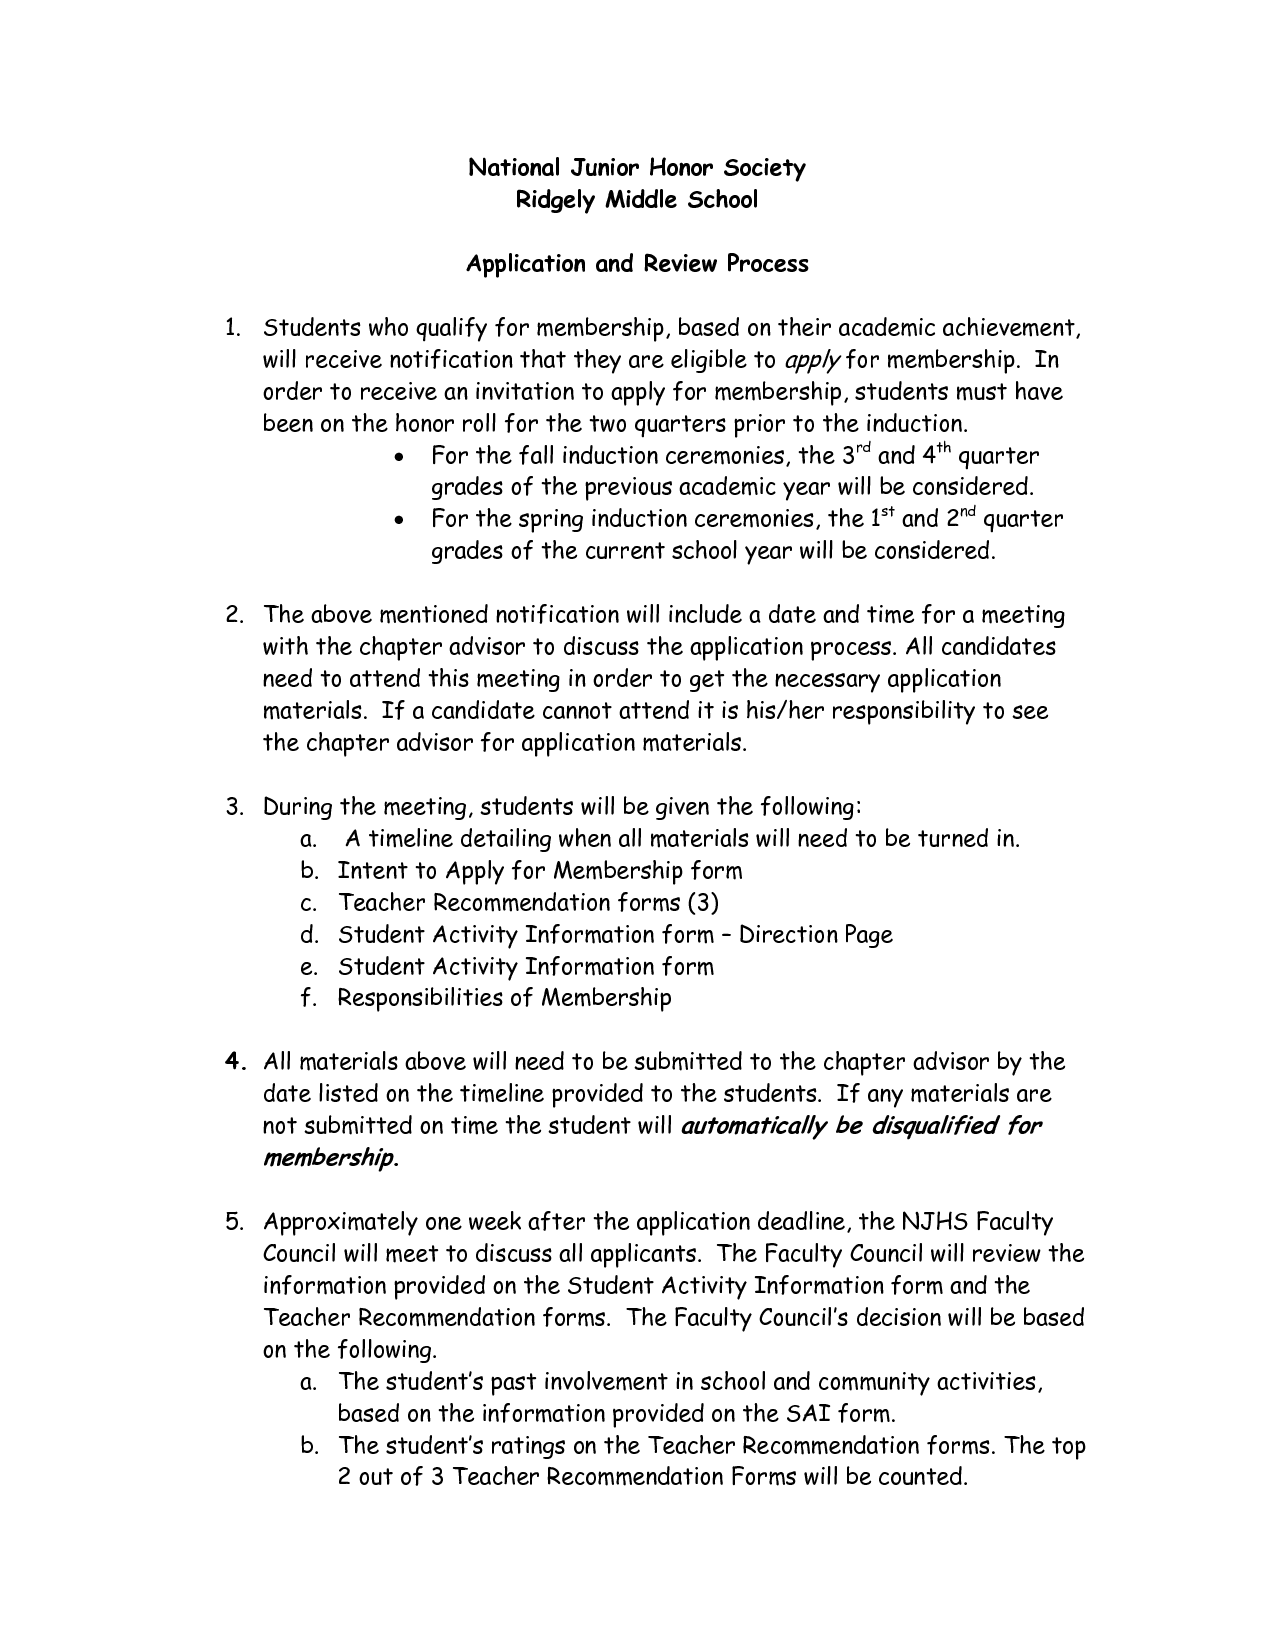 005 Essay Example National Honor Society Honors Examples Of Junior Outstanding Application Structure High School Full